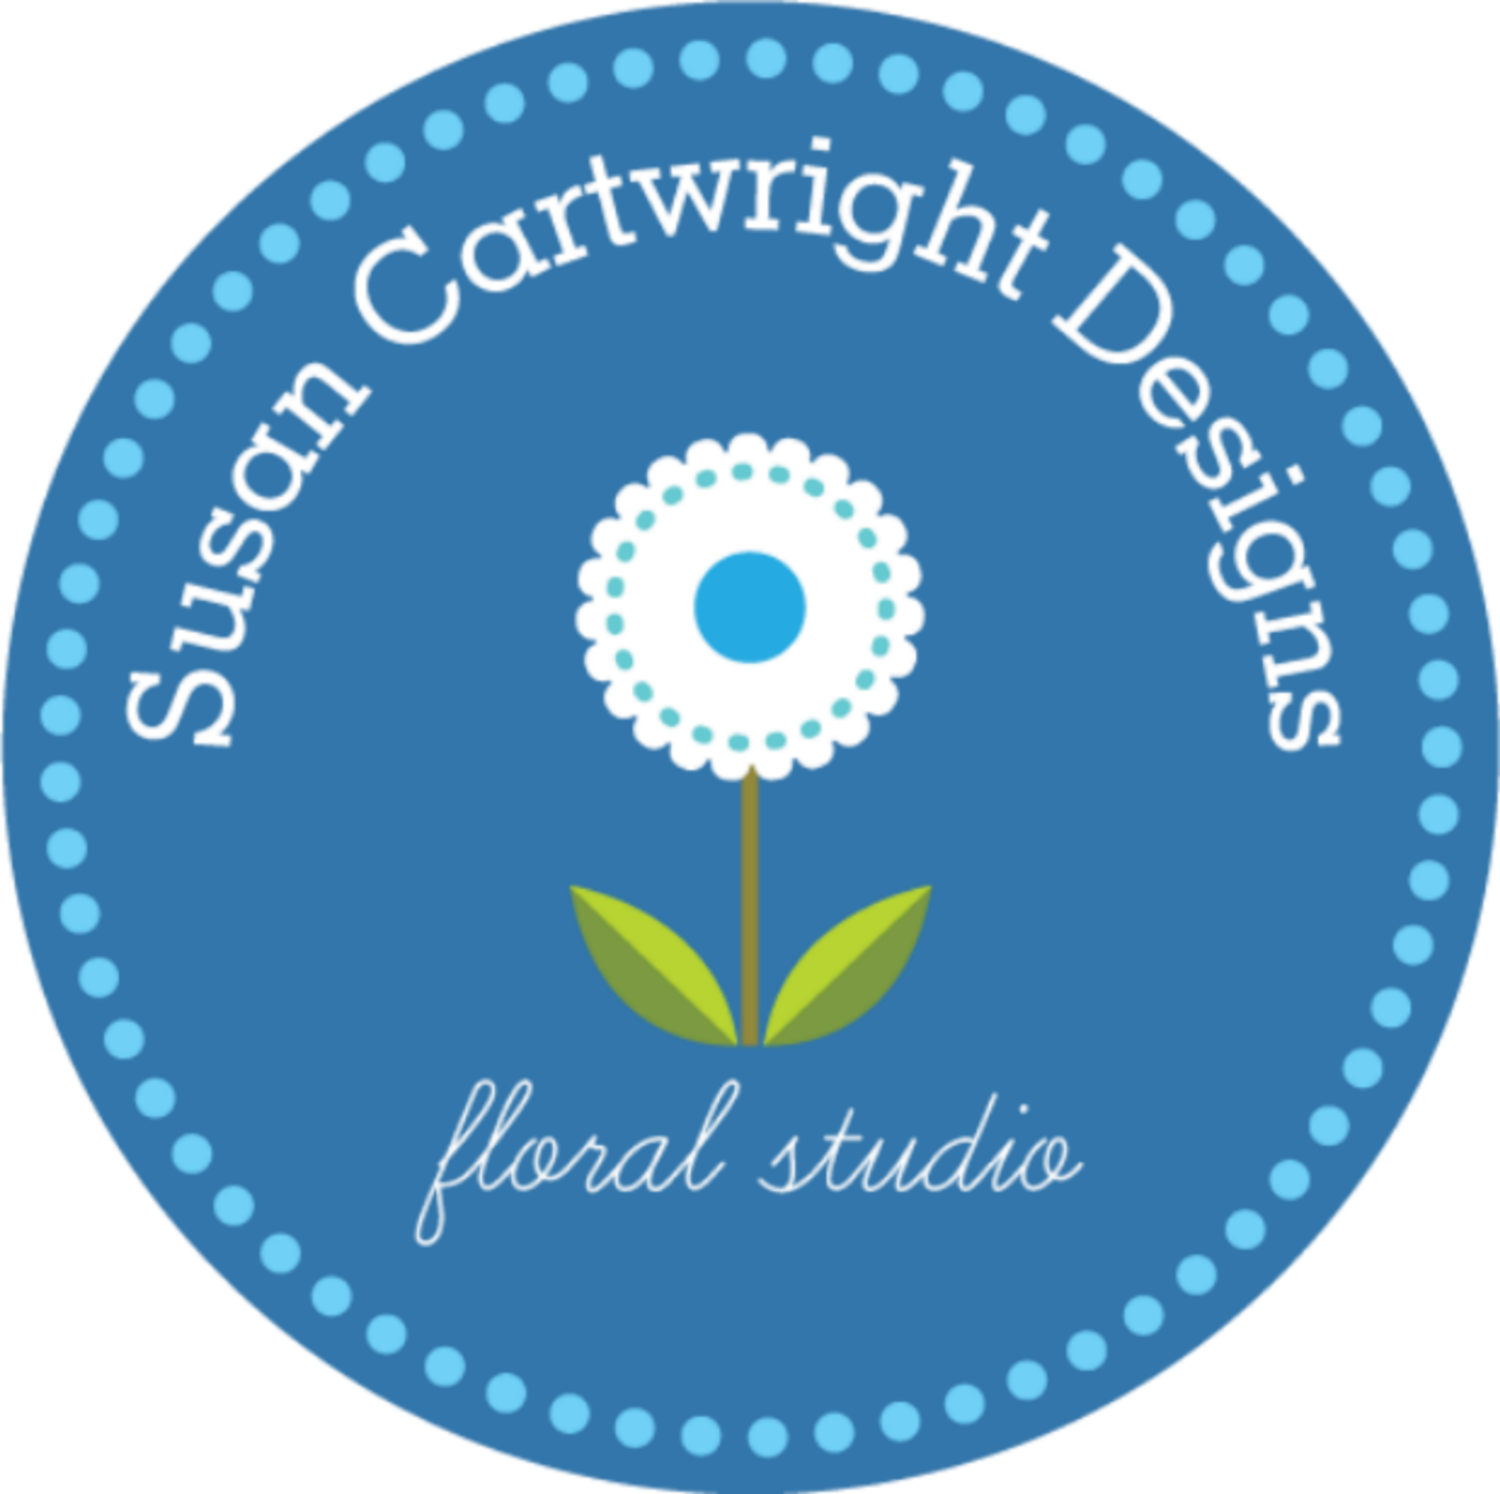 Susan Cartrwright Designs